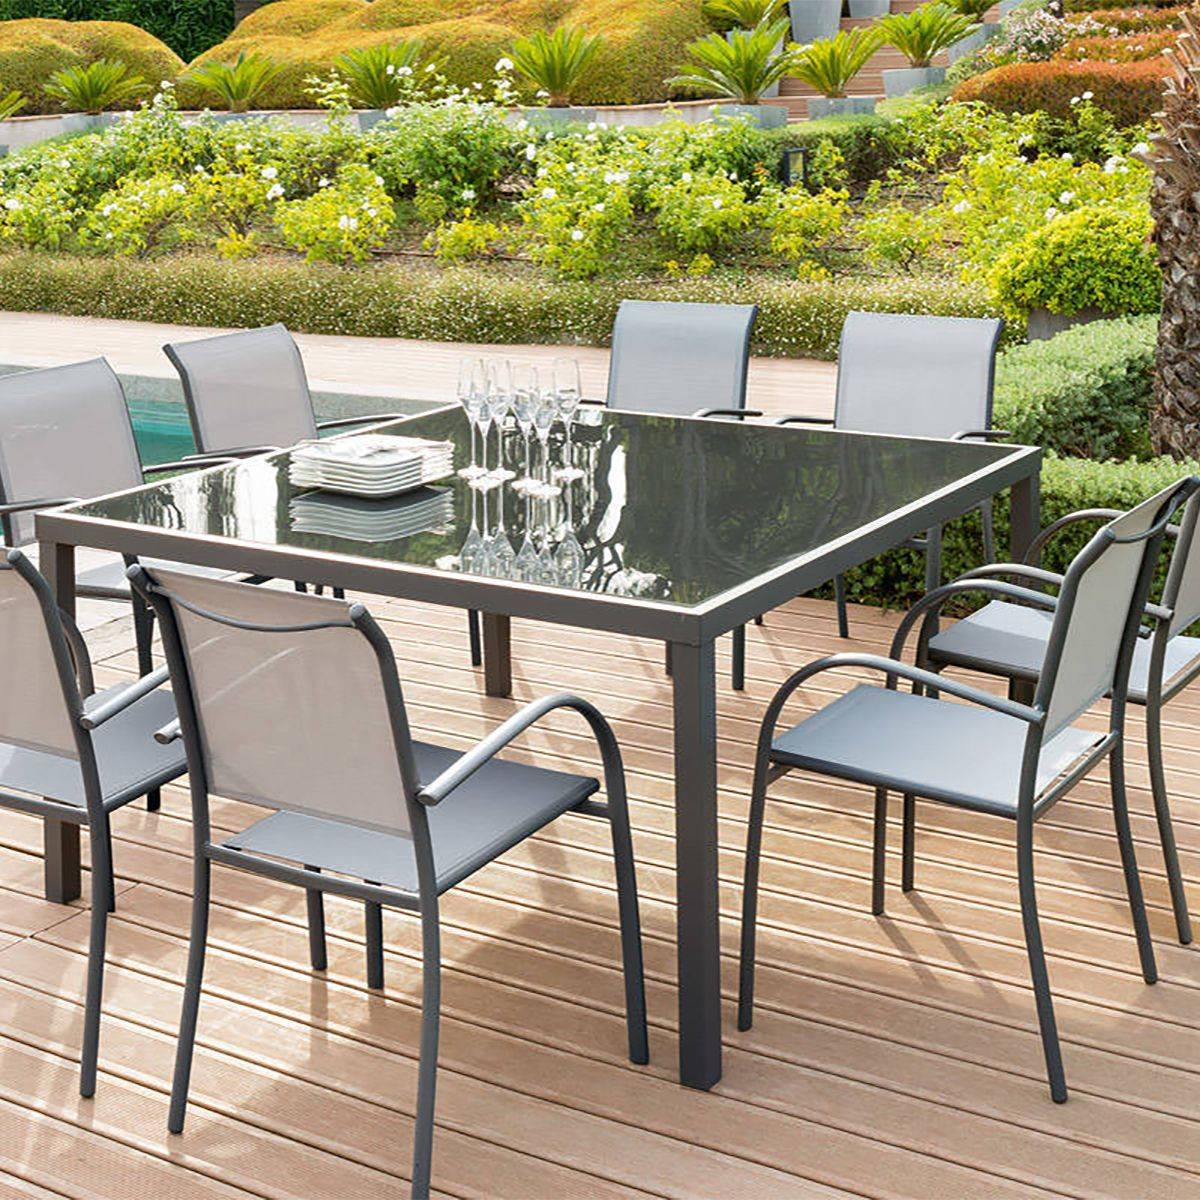 Personnes Jardin De Carree Table 8 bvmIY7gf6y